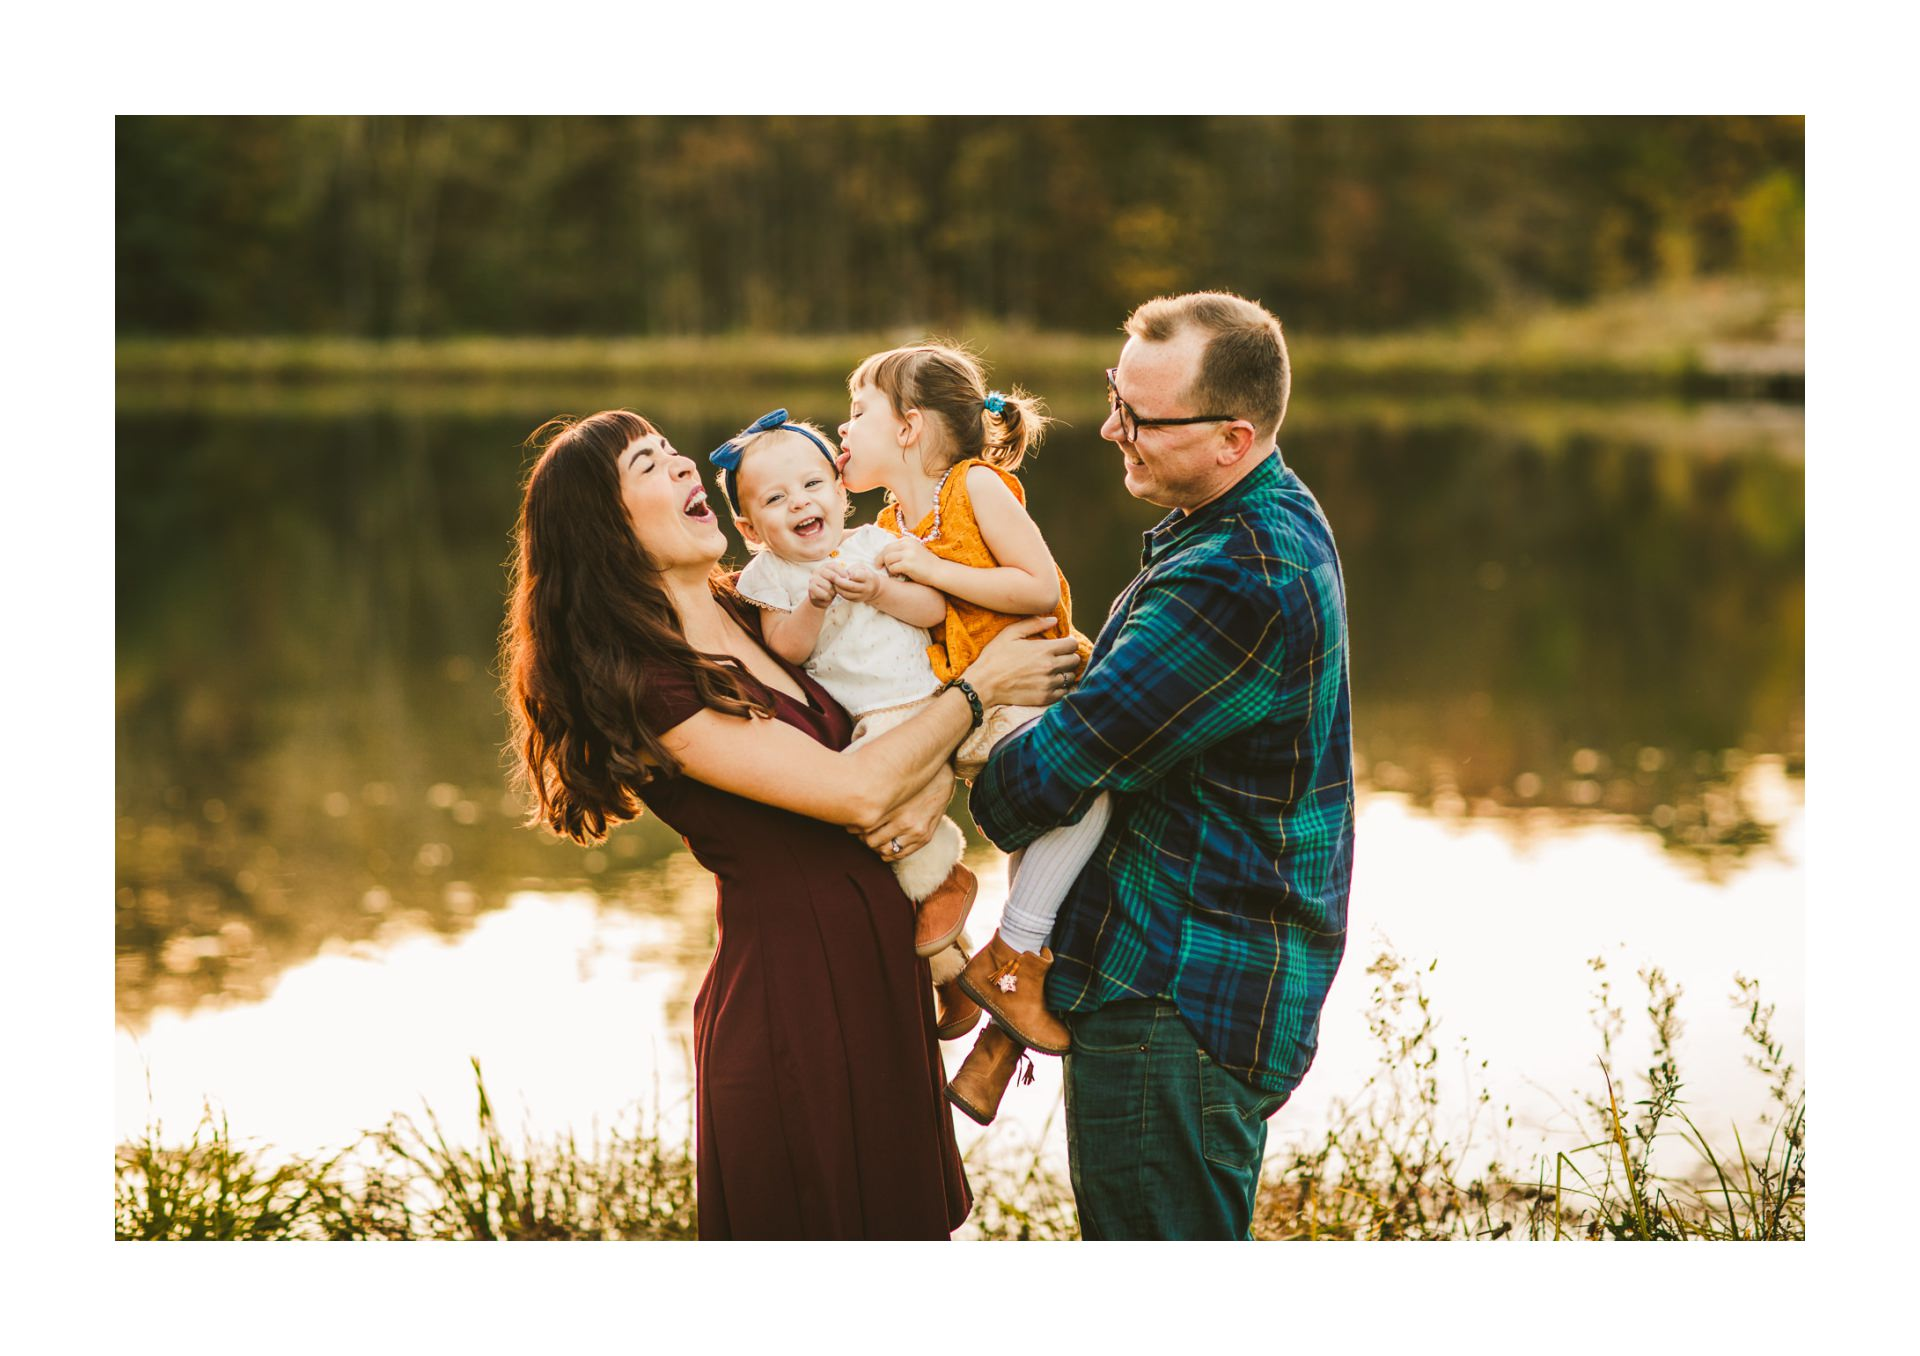 Lakewood Family Portrait Photographer Ken and Angie Clunk 11.jpg